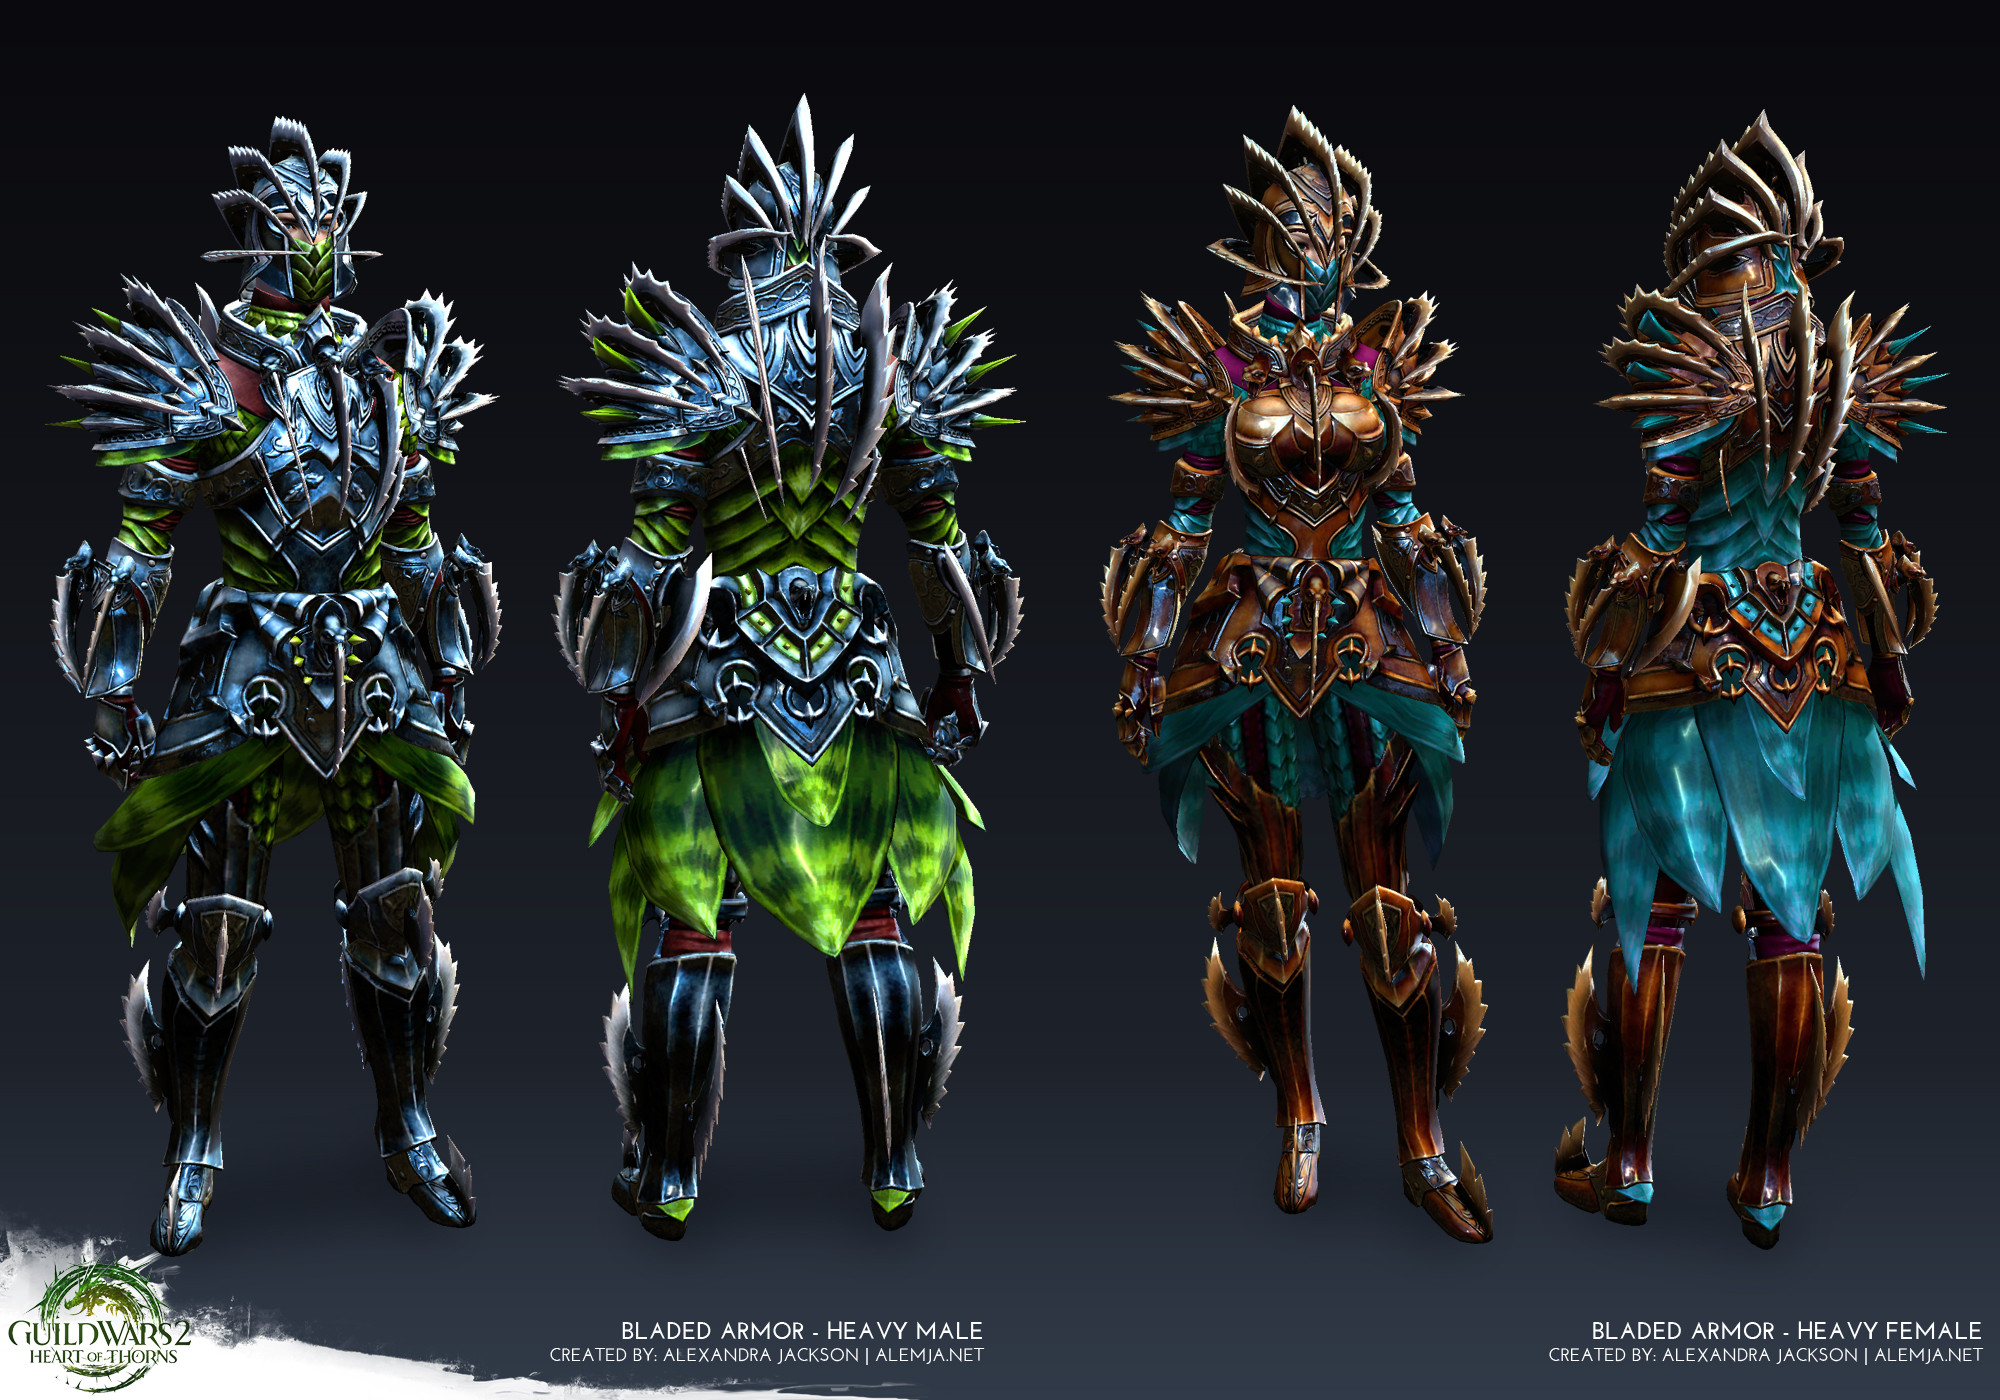 Worked on the armor creating high res hardsurface pieces, the game ready model and texures. I also was in charge of the refit from of the shared pieces from the male body to the female body. This set was for Guild Wars 2 Heart of Thorns